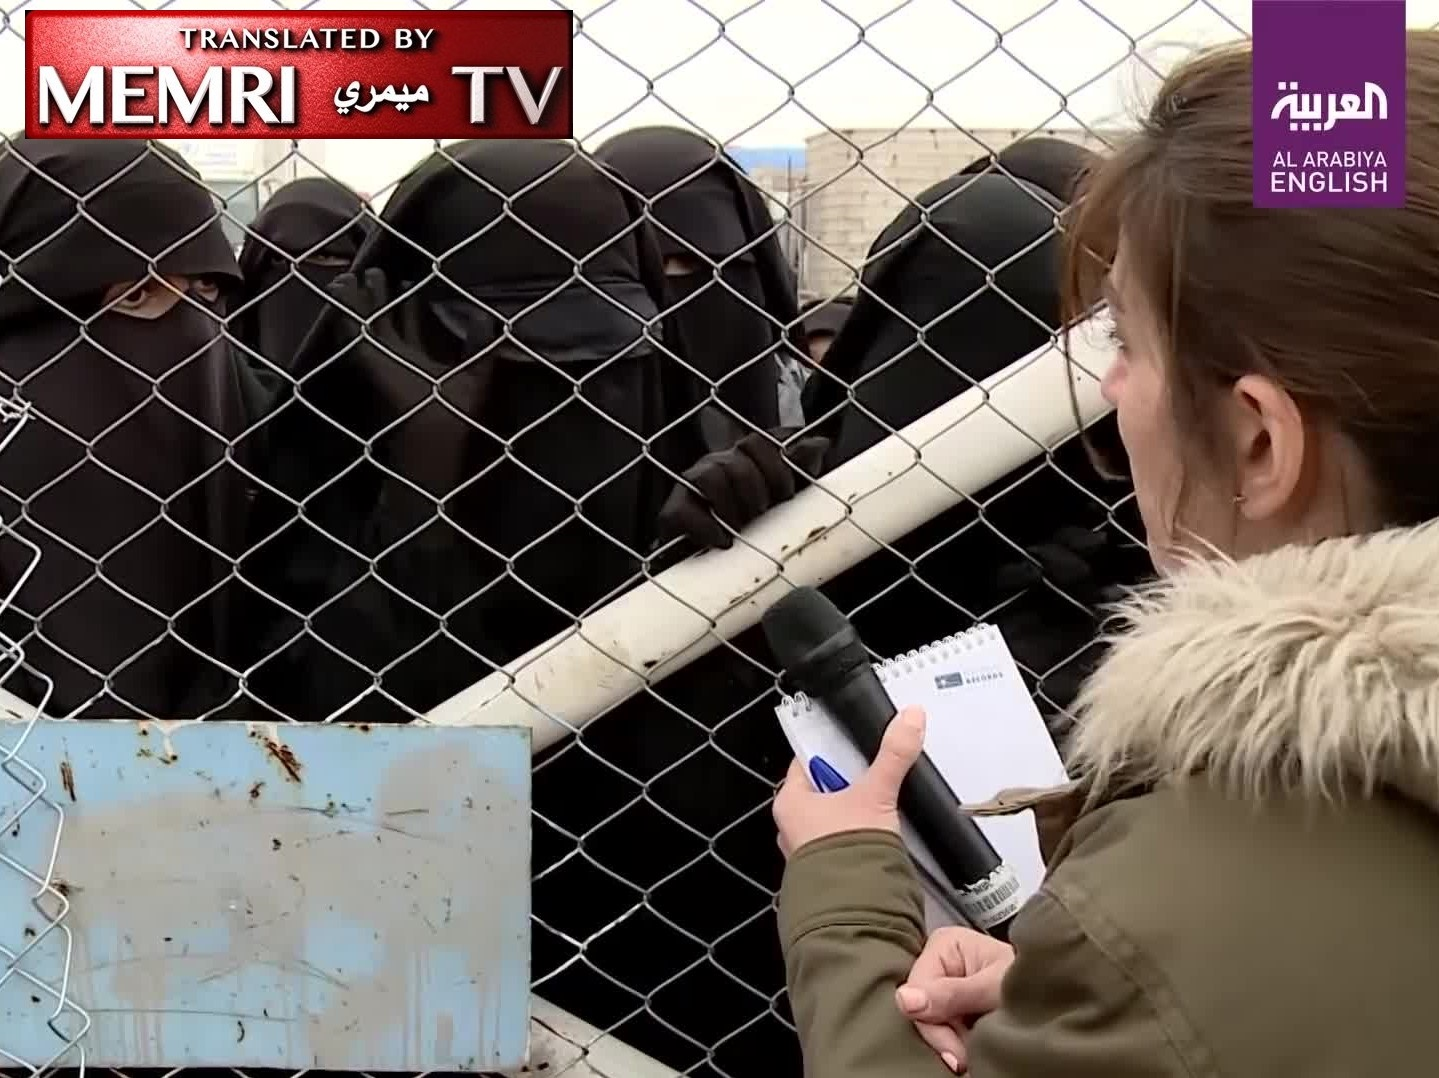 Female ISIS Members at SDF Camp: